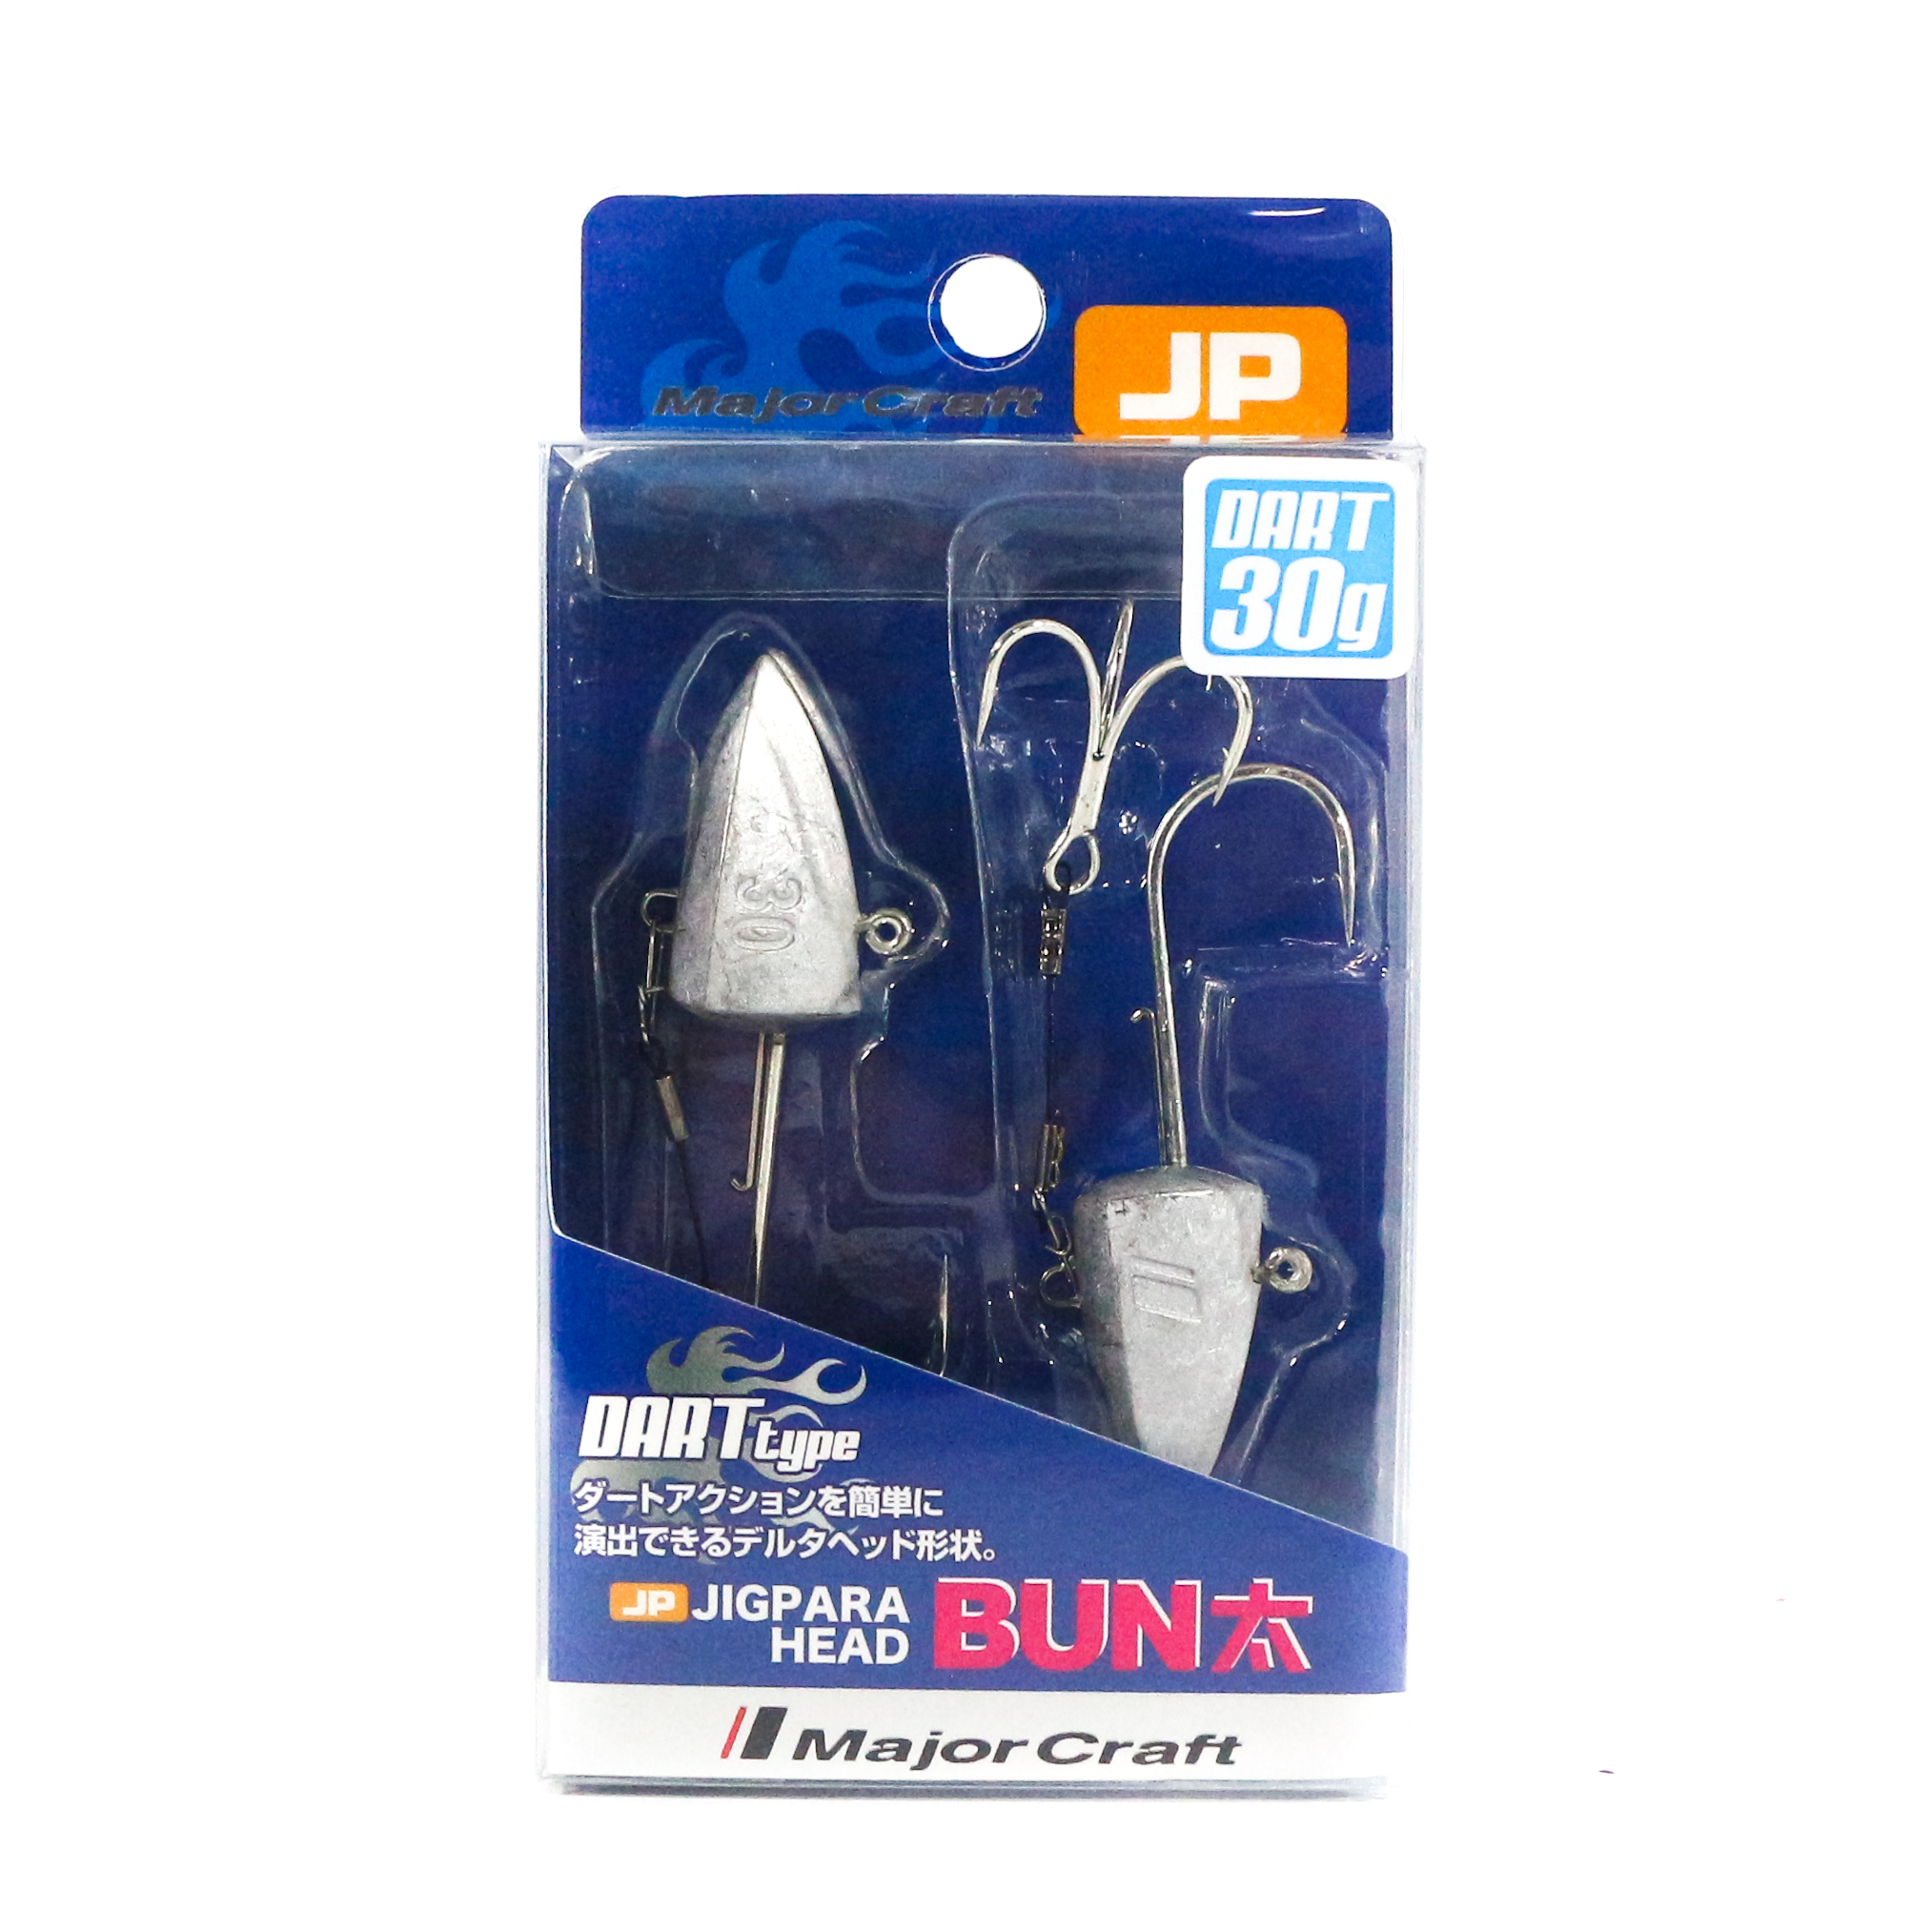 Major Craft Jig Head Dart JPBU-30 grams Size 1/0 (8621)